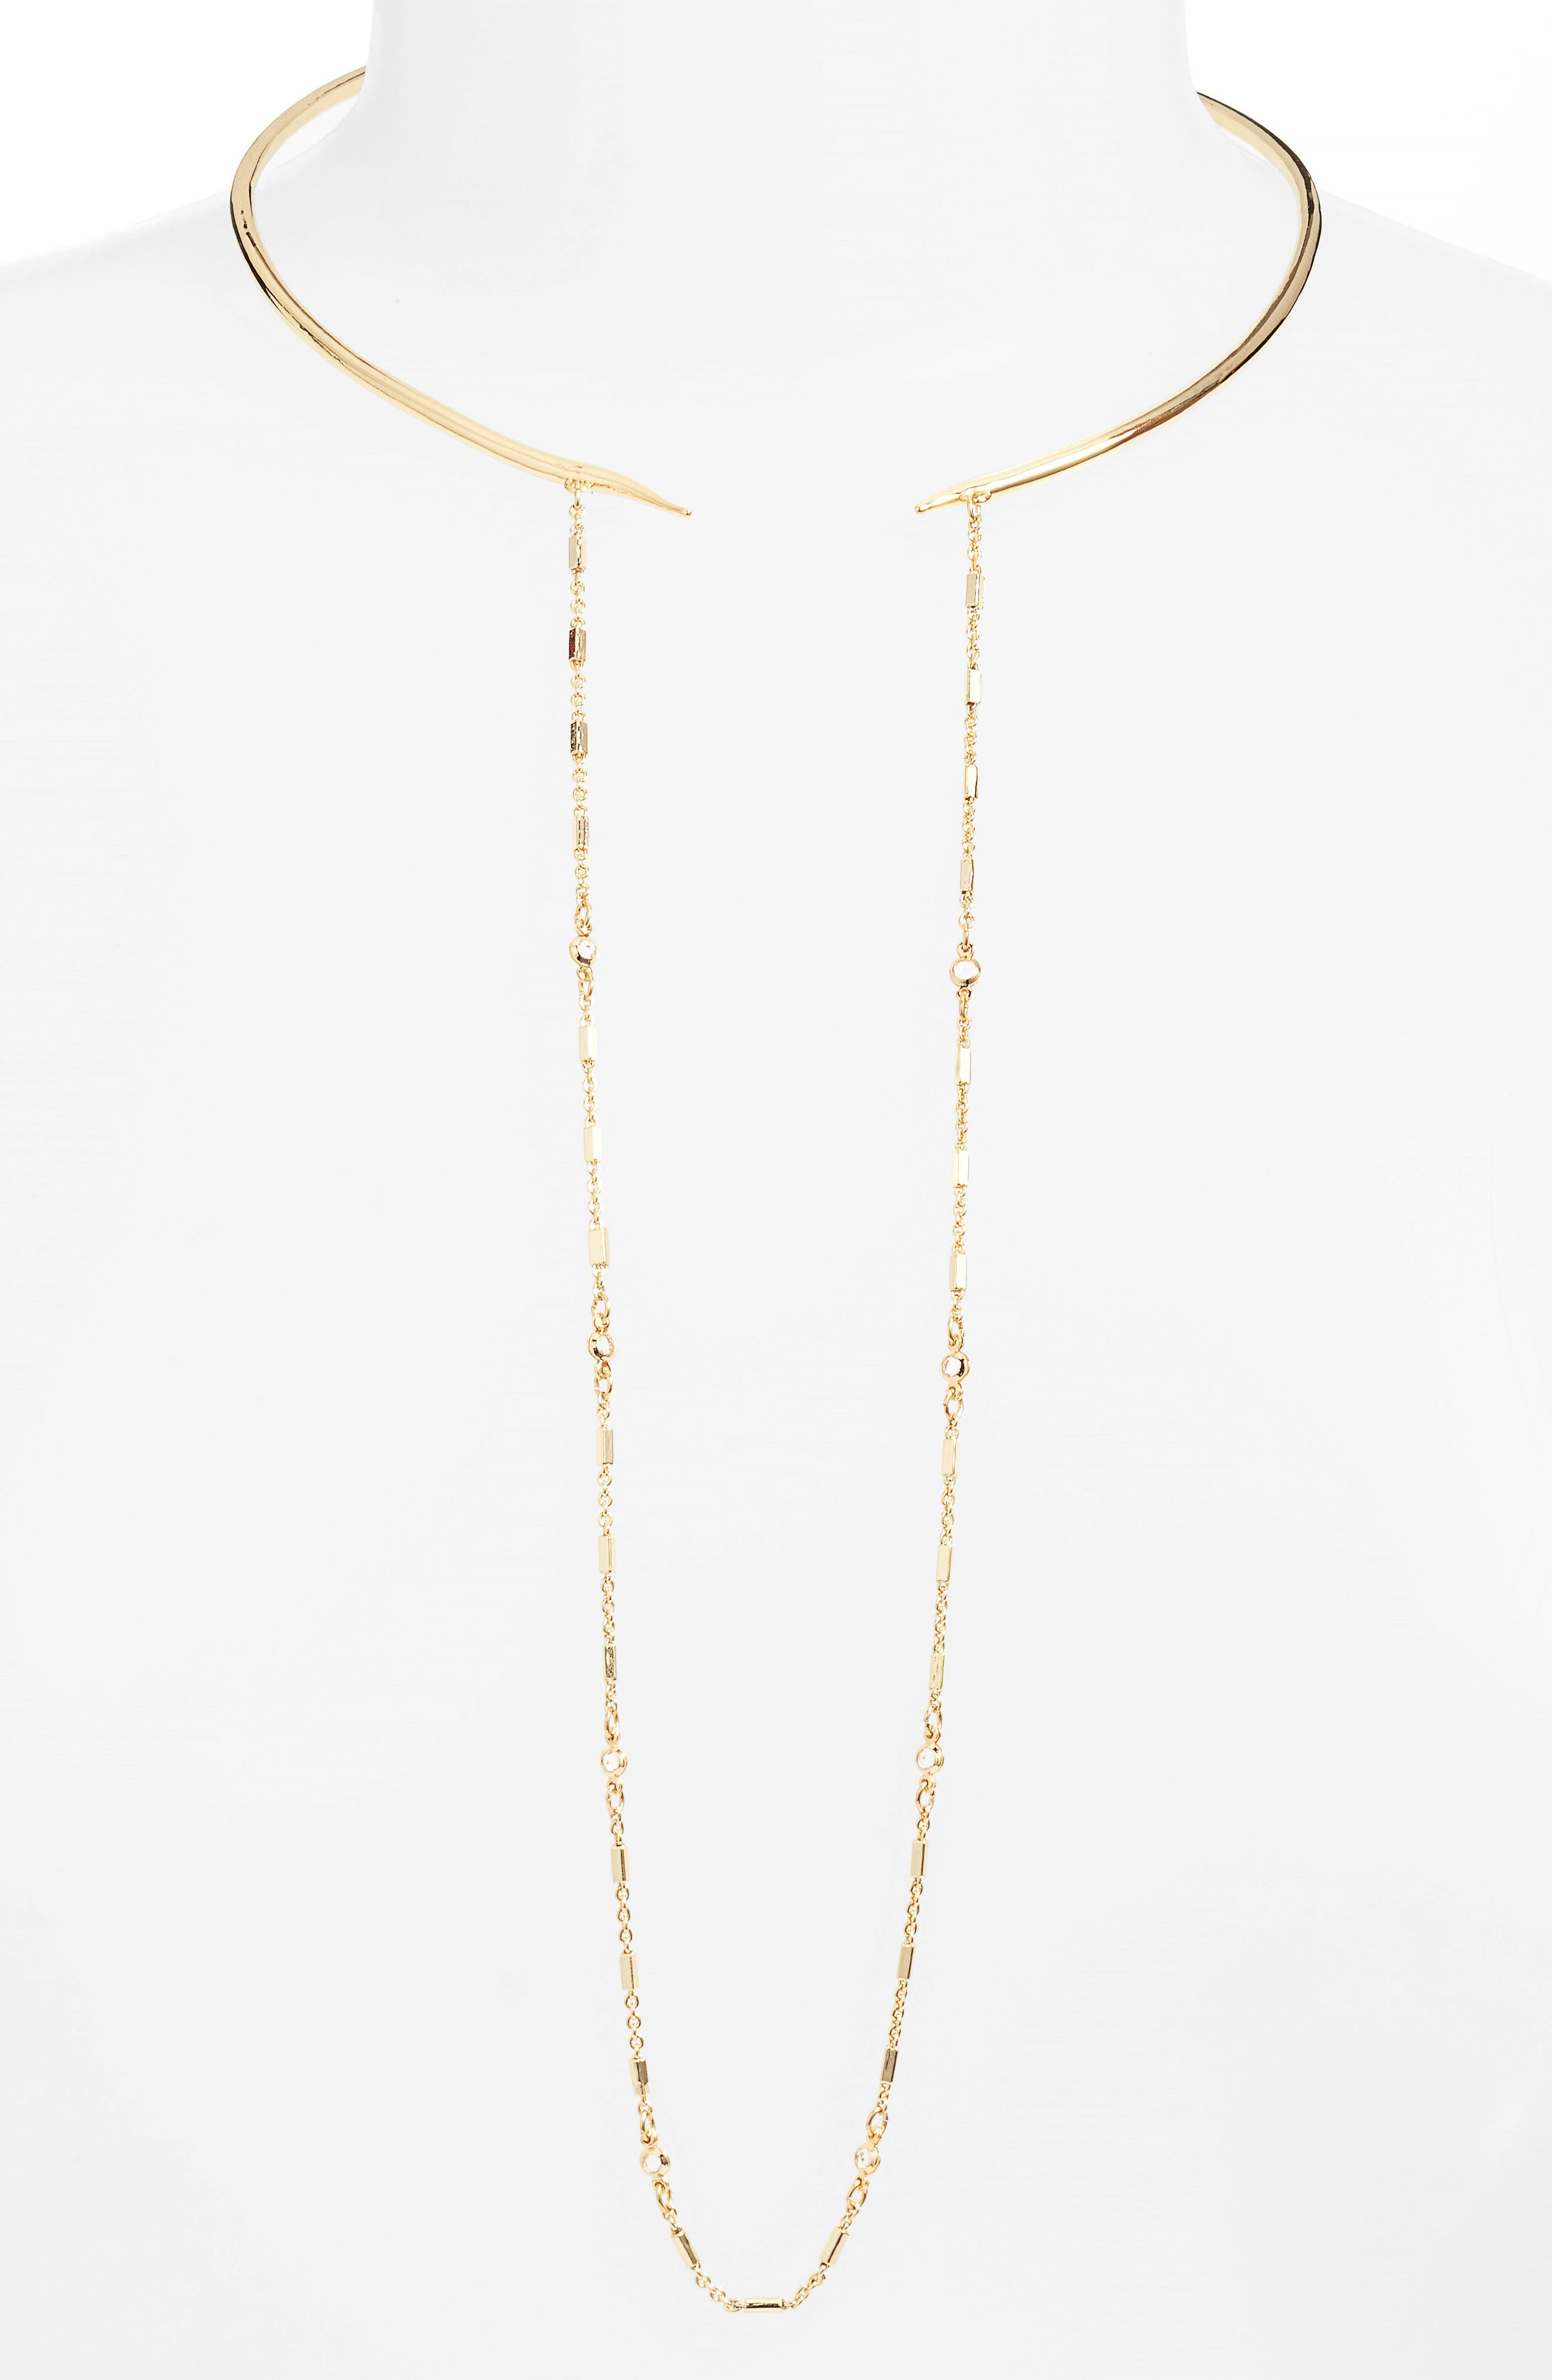 Alternate Image 1 Selected - Vince Camuto Hinge Collar Necklace